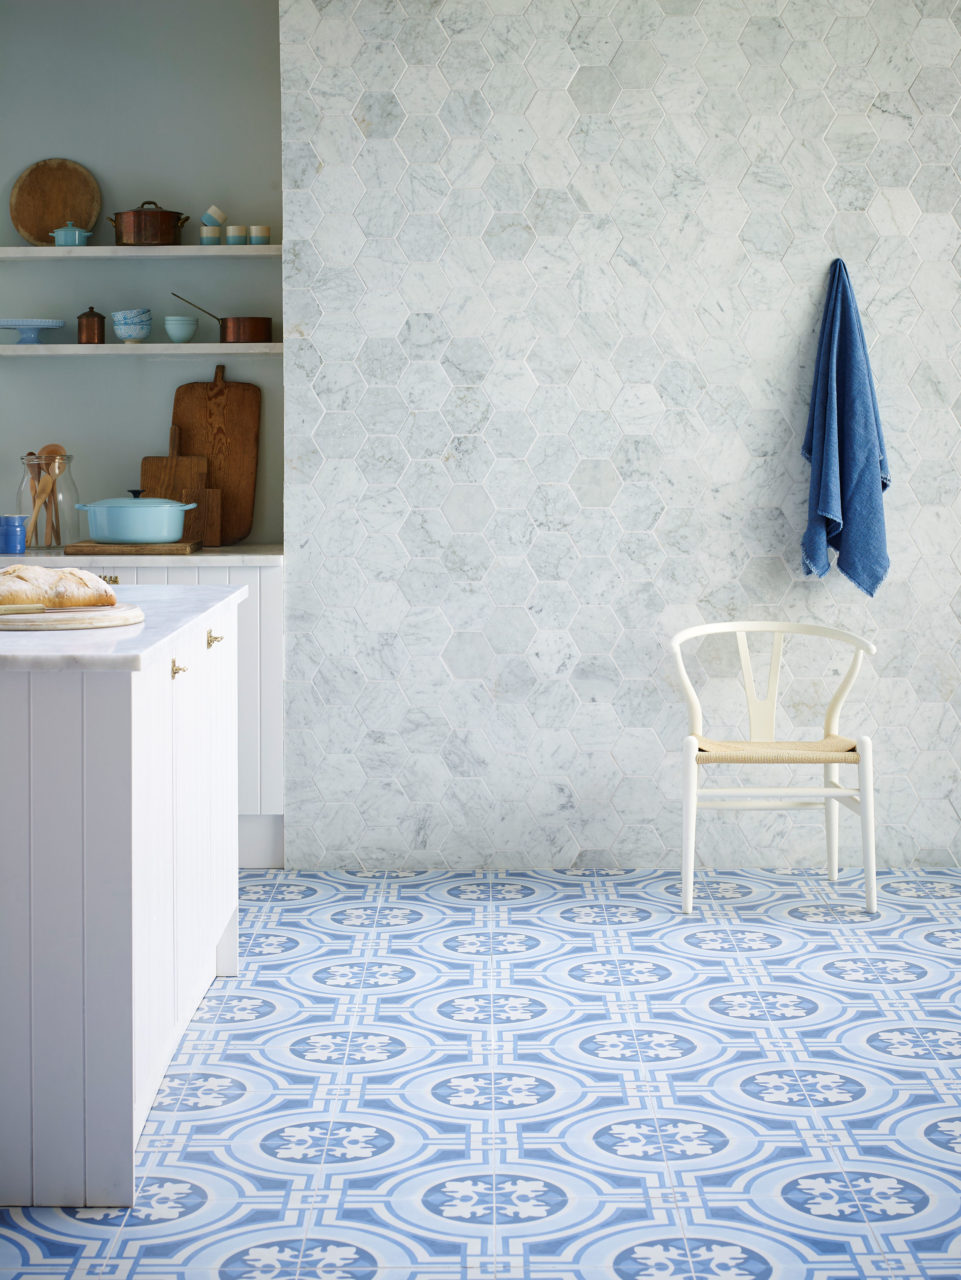 Mod Encaustic Blue & Carrara Tumbled Marble Tile Hexagon v.II (1)